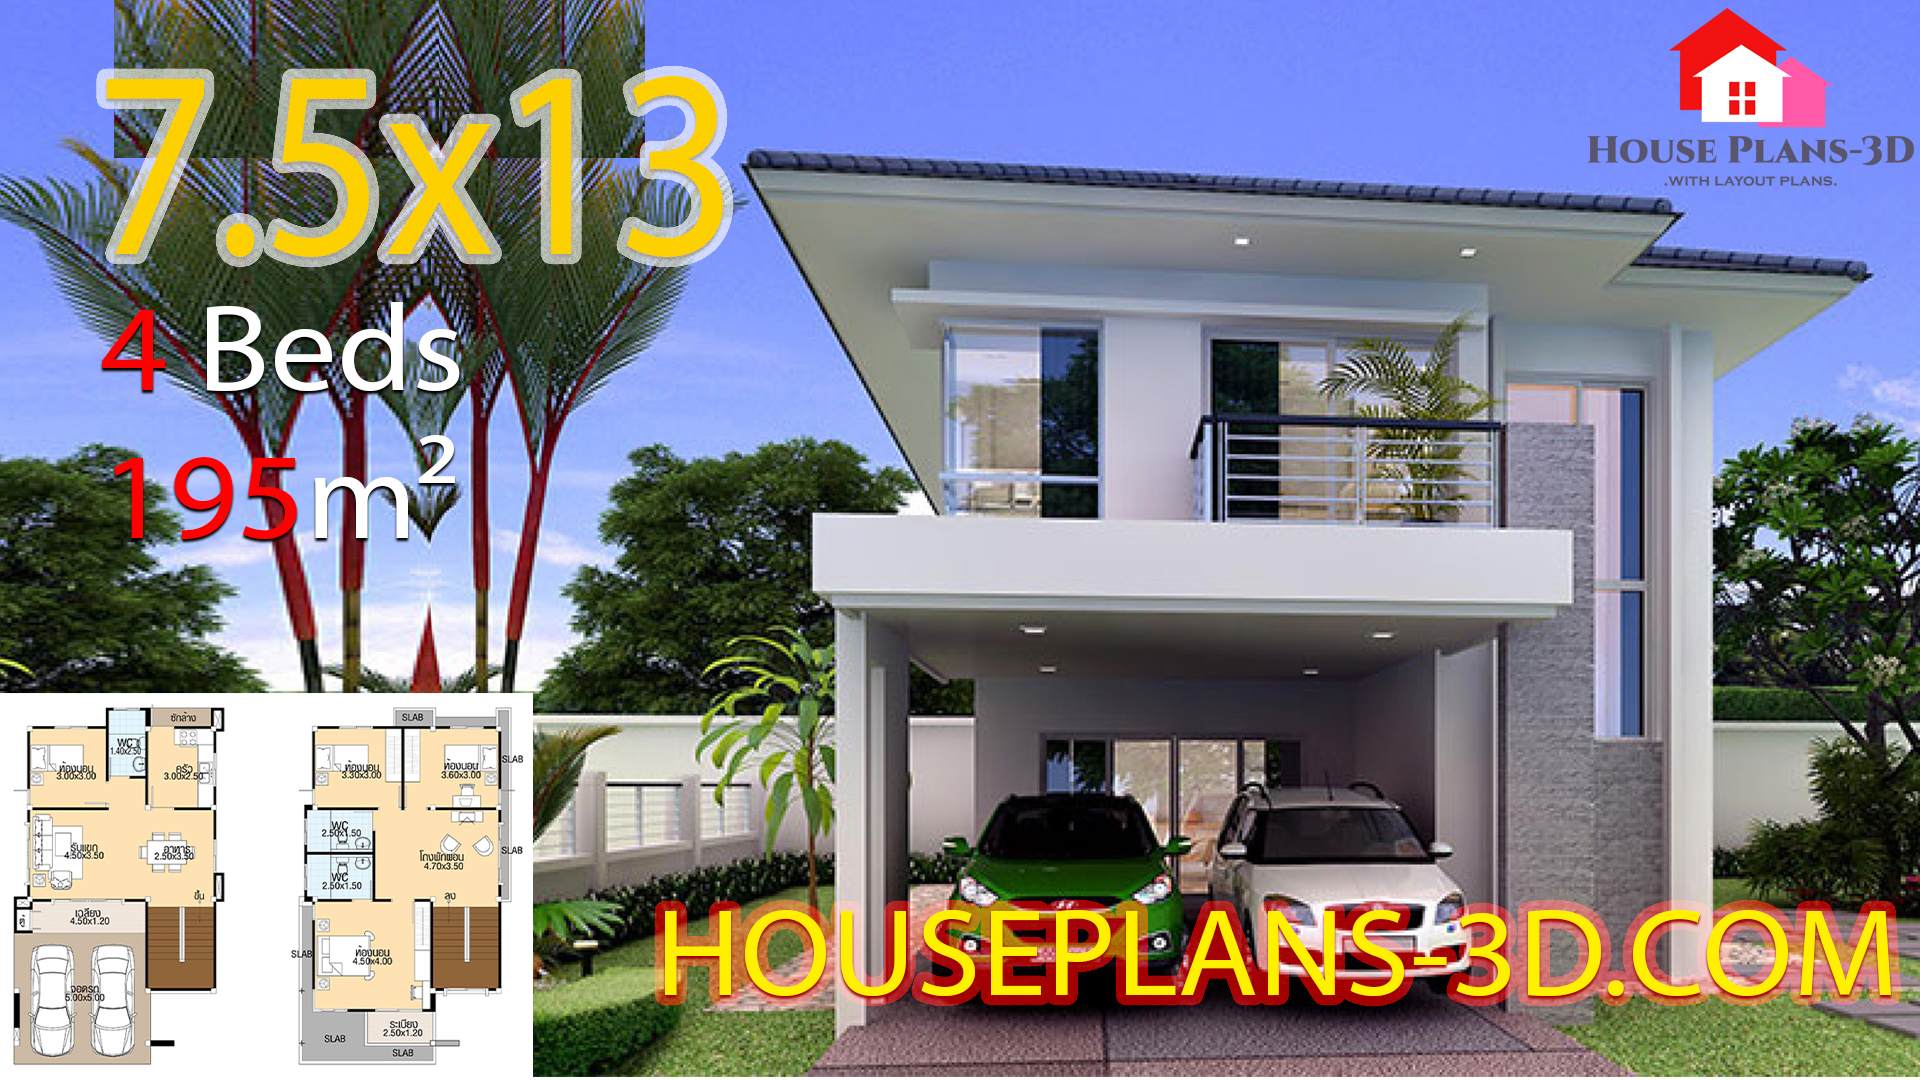 House plans 3d 7.5×13 with 4 bedrooms